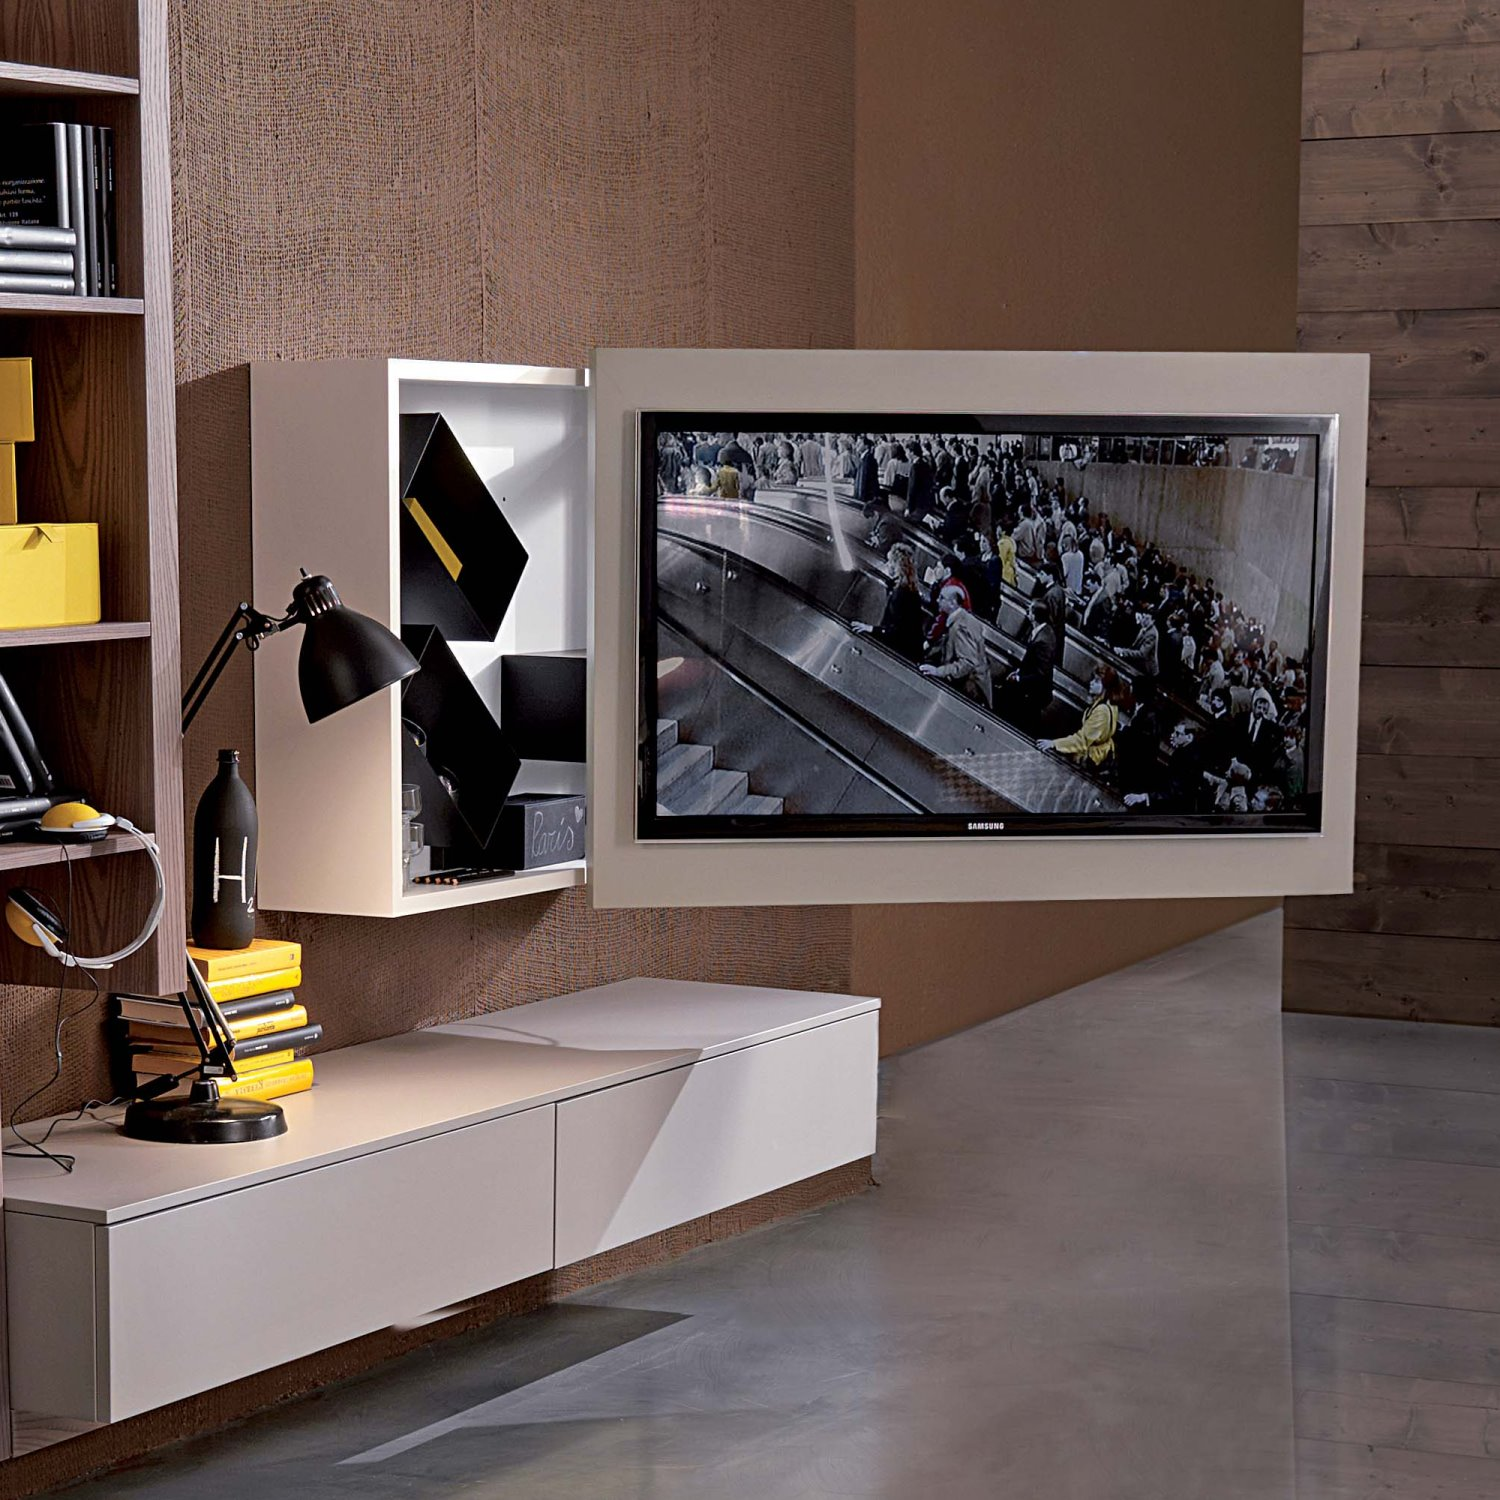 Porta Tv Girevole Design.Rack